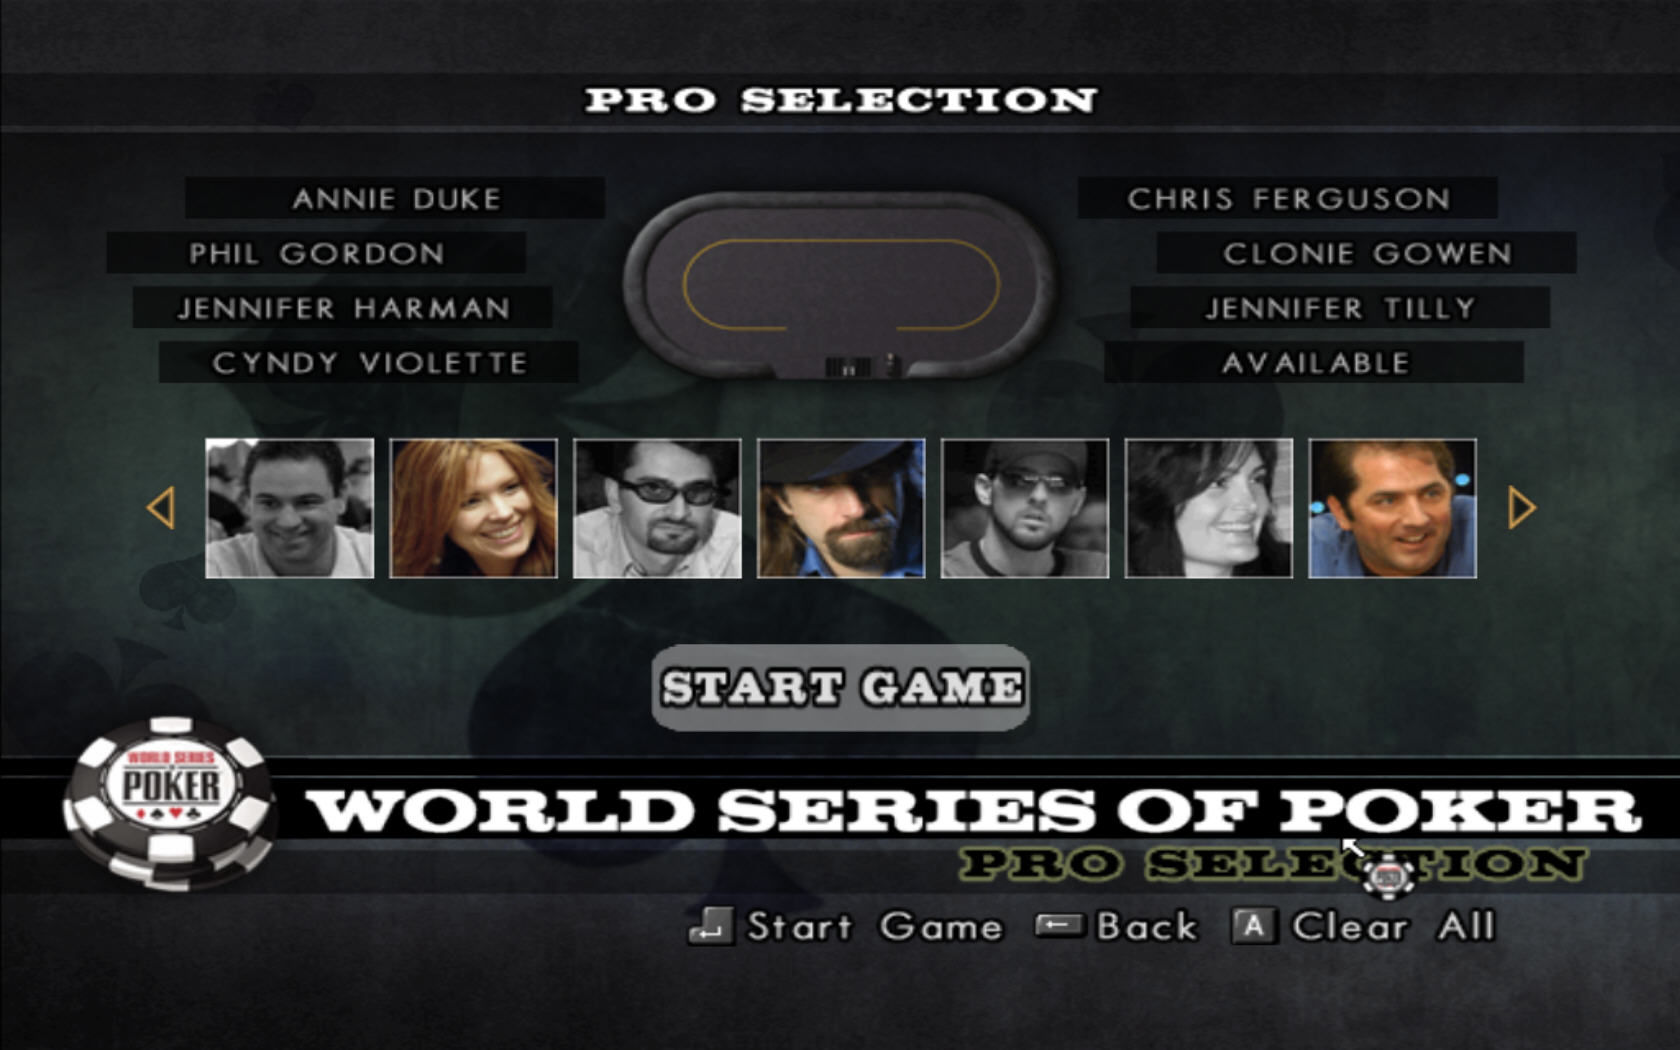 World Series of Poker 2008: Battle for the Bracelets Windows Pro selection screen.